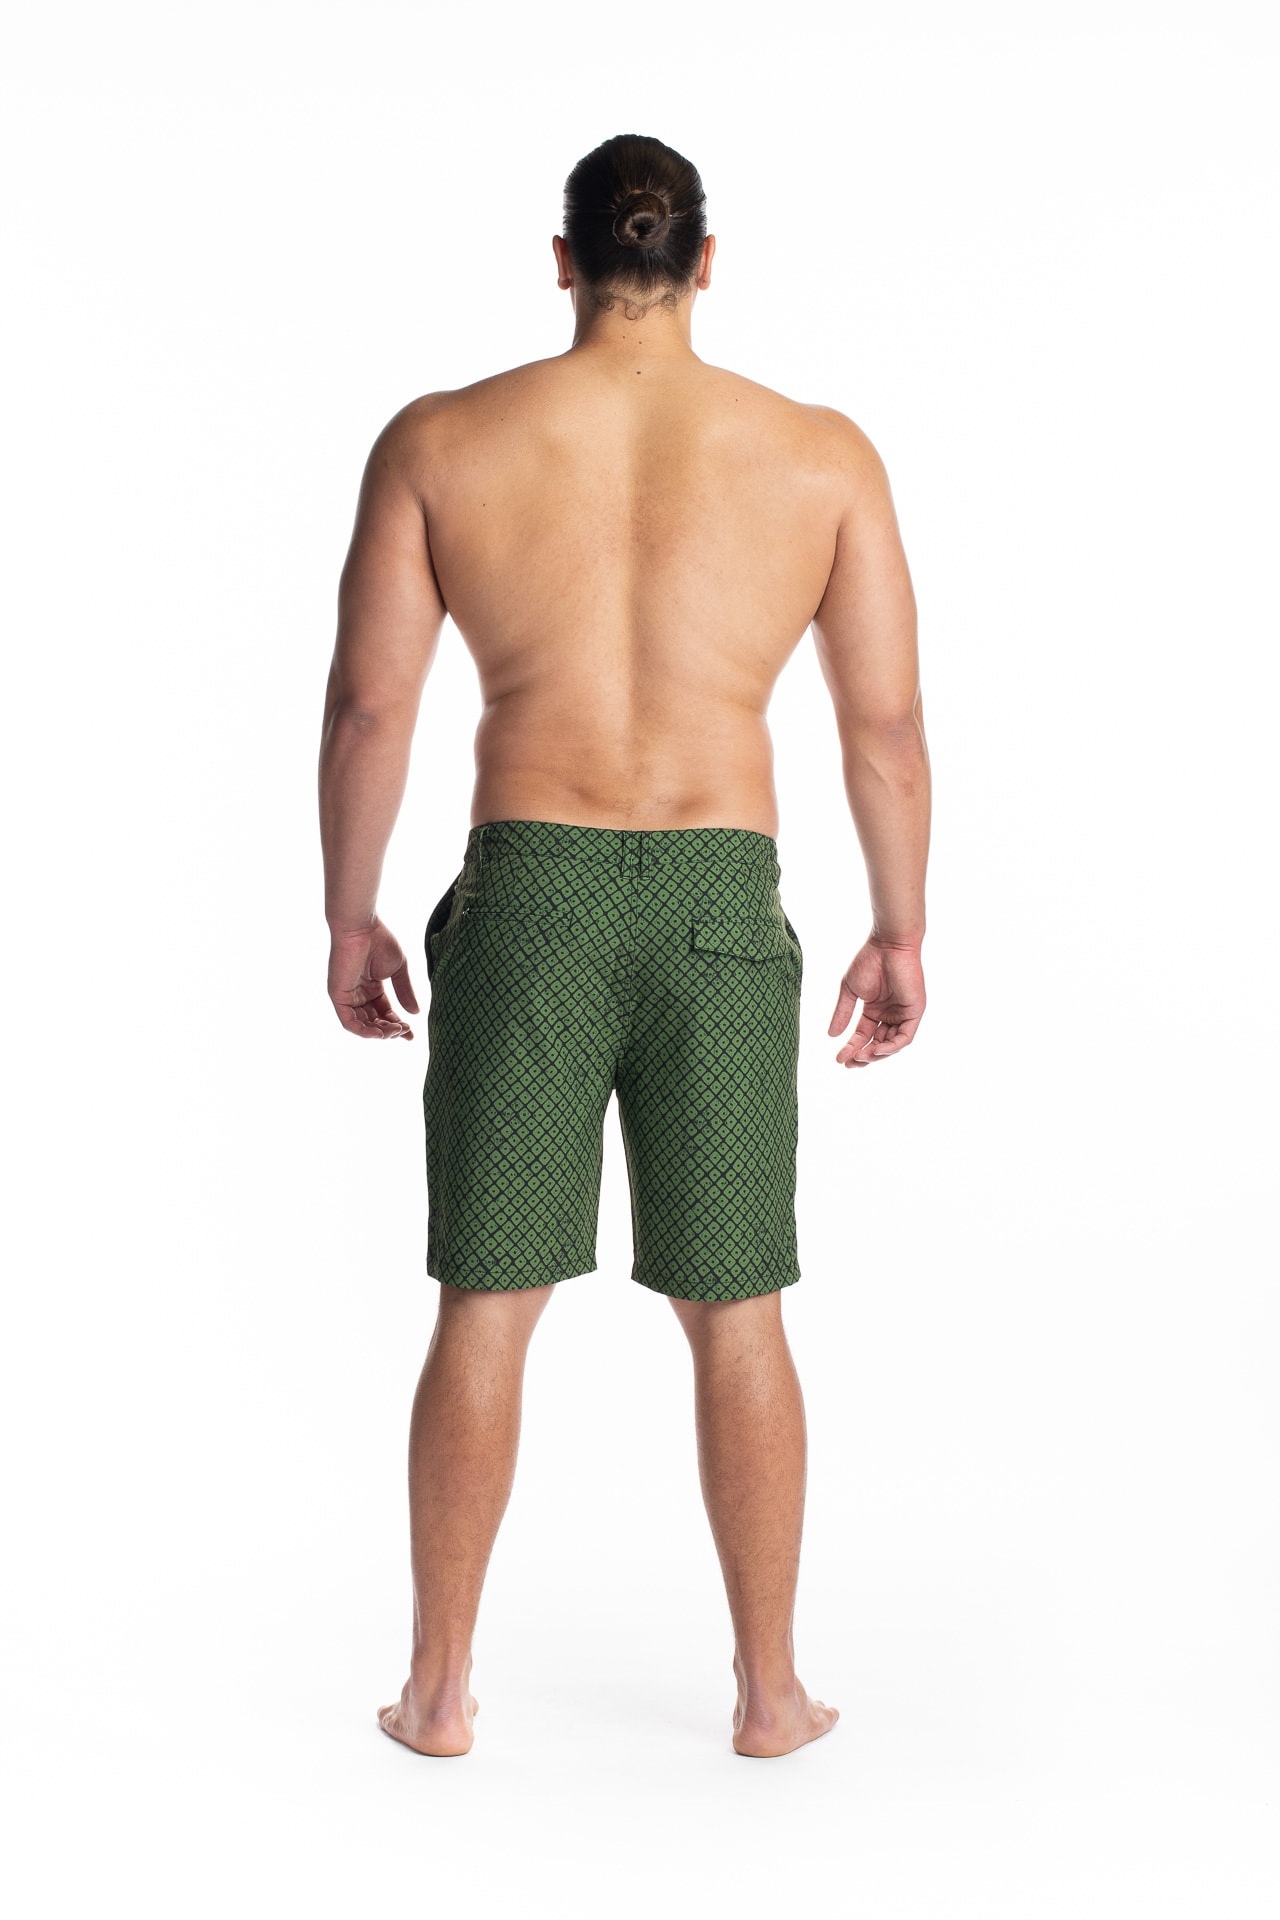 Male model wearing 4 Way Stretch in Black Green Upena - Back View